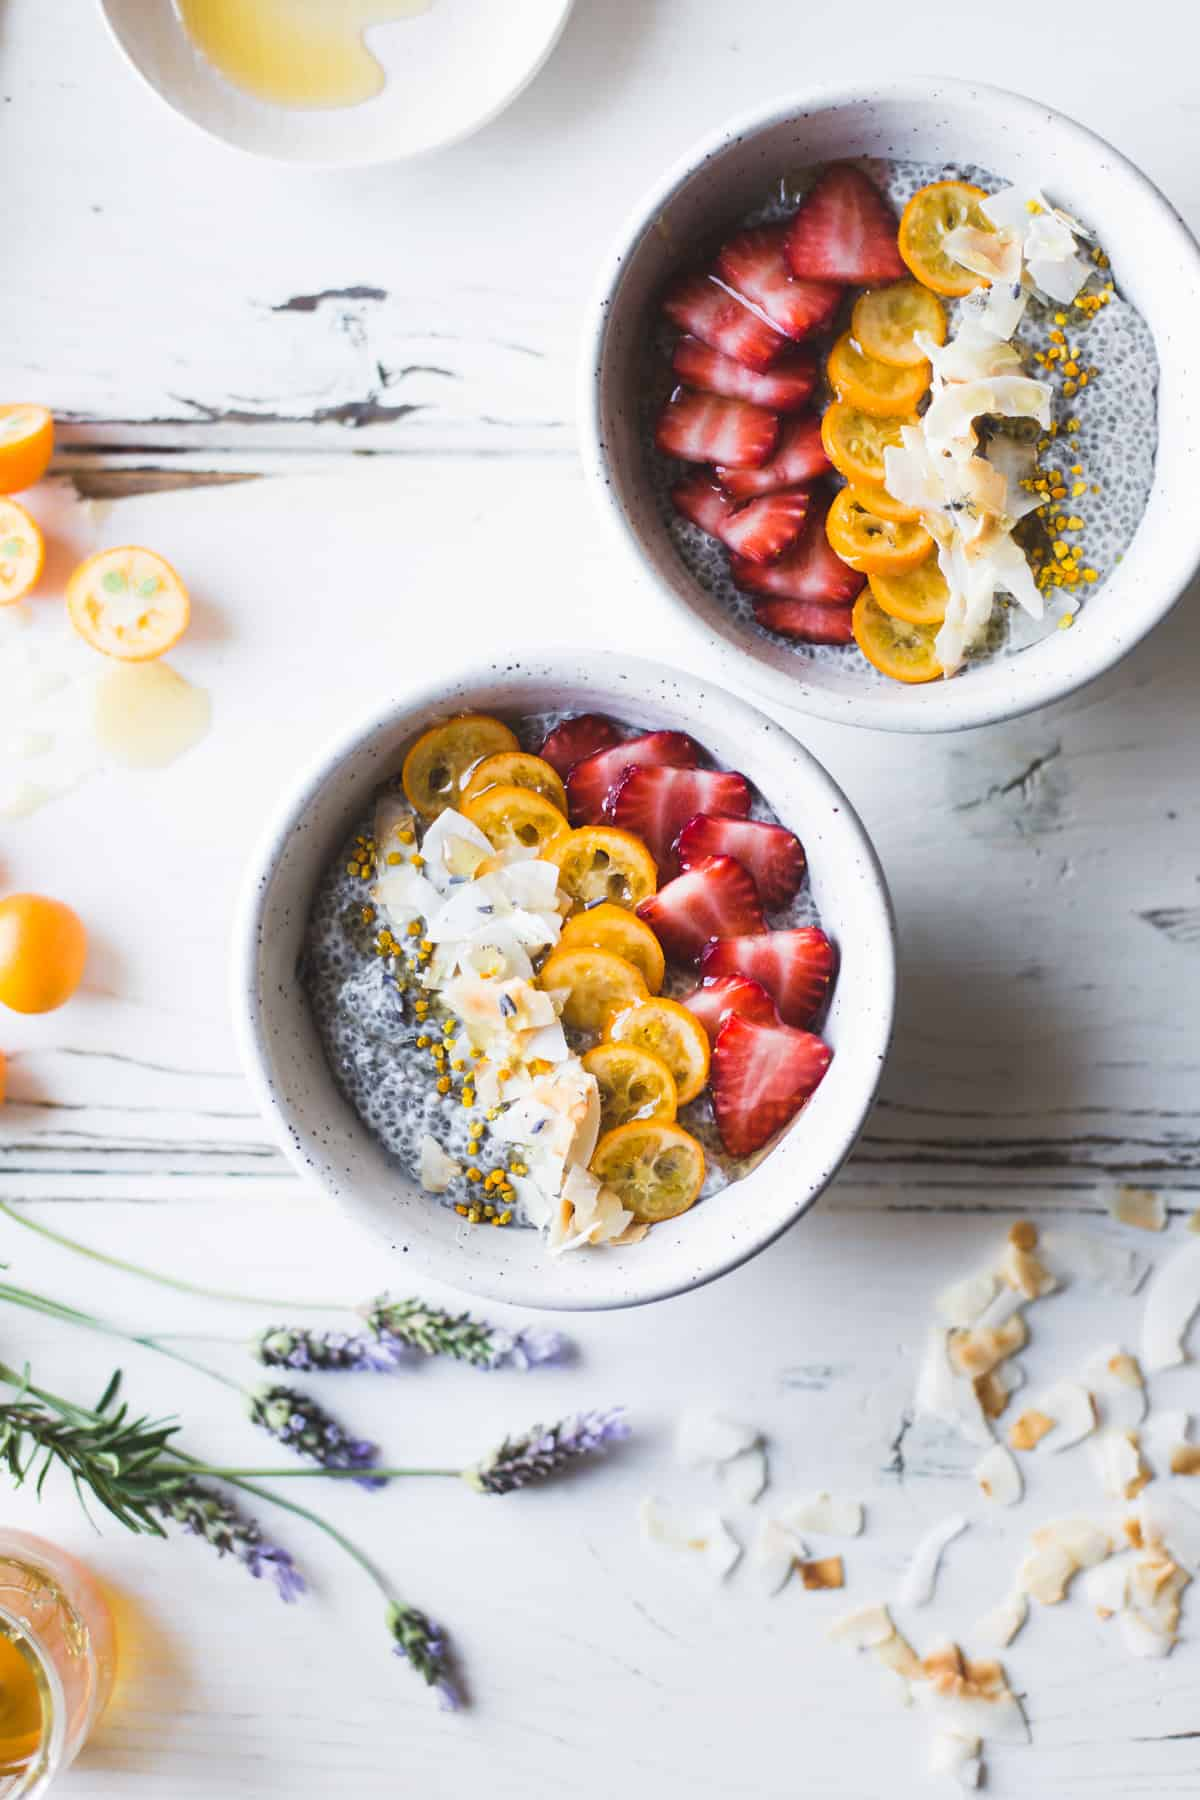 2 bowls of Chia Pudding Breakfast Bowls with Kumquats, Berries & Lavender Honey {gluten-free, dairy-free}